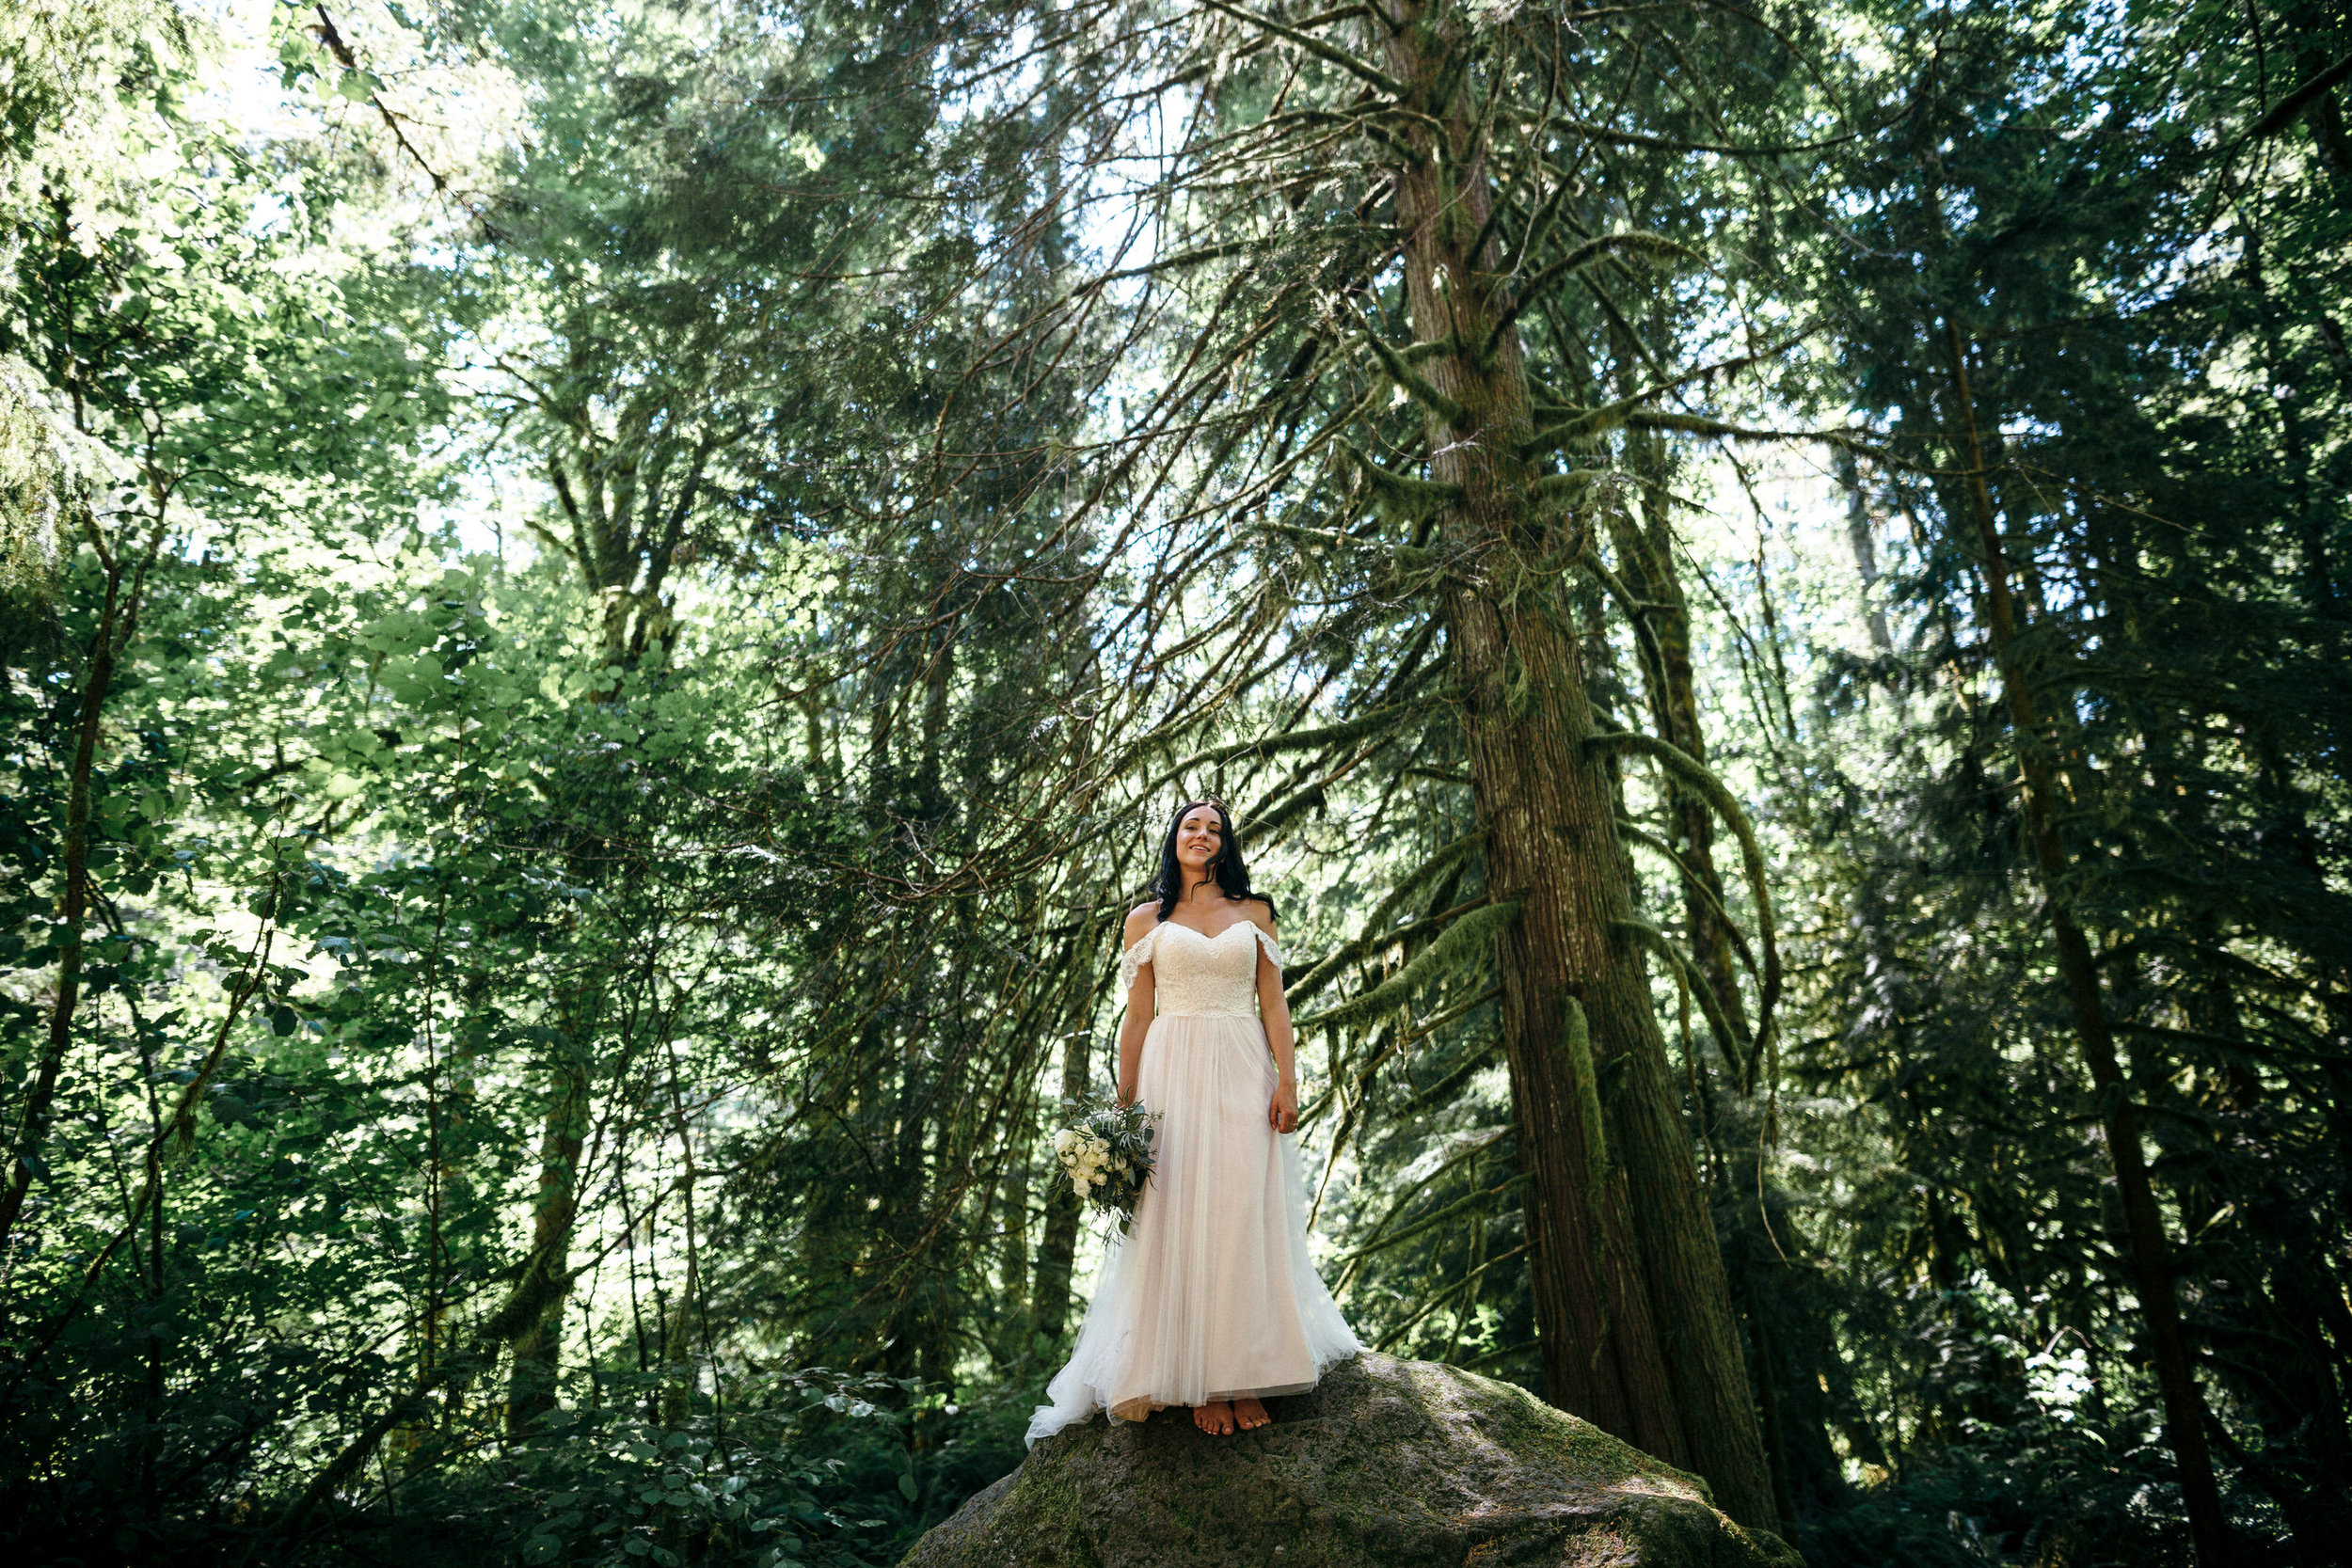 MT Hood Wildwood elopement wedding oregon portland photography0070.JPG